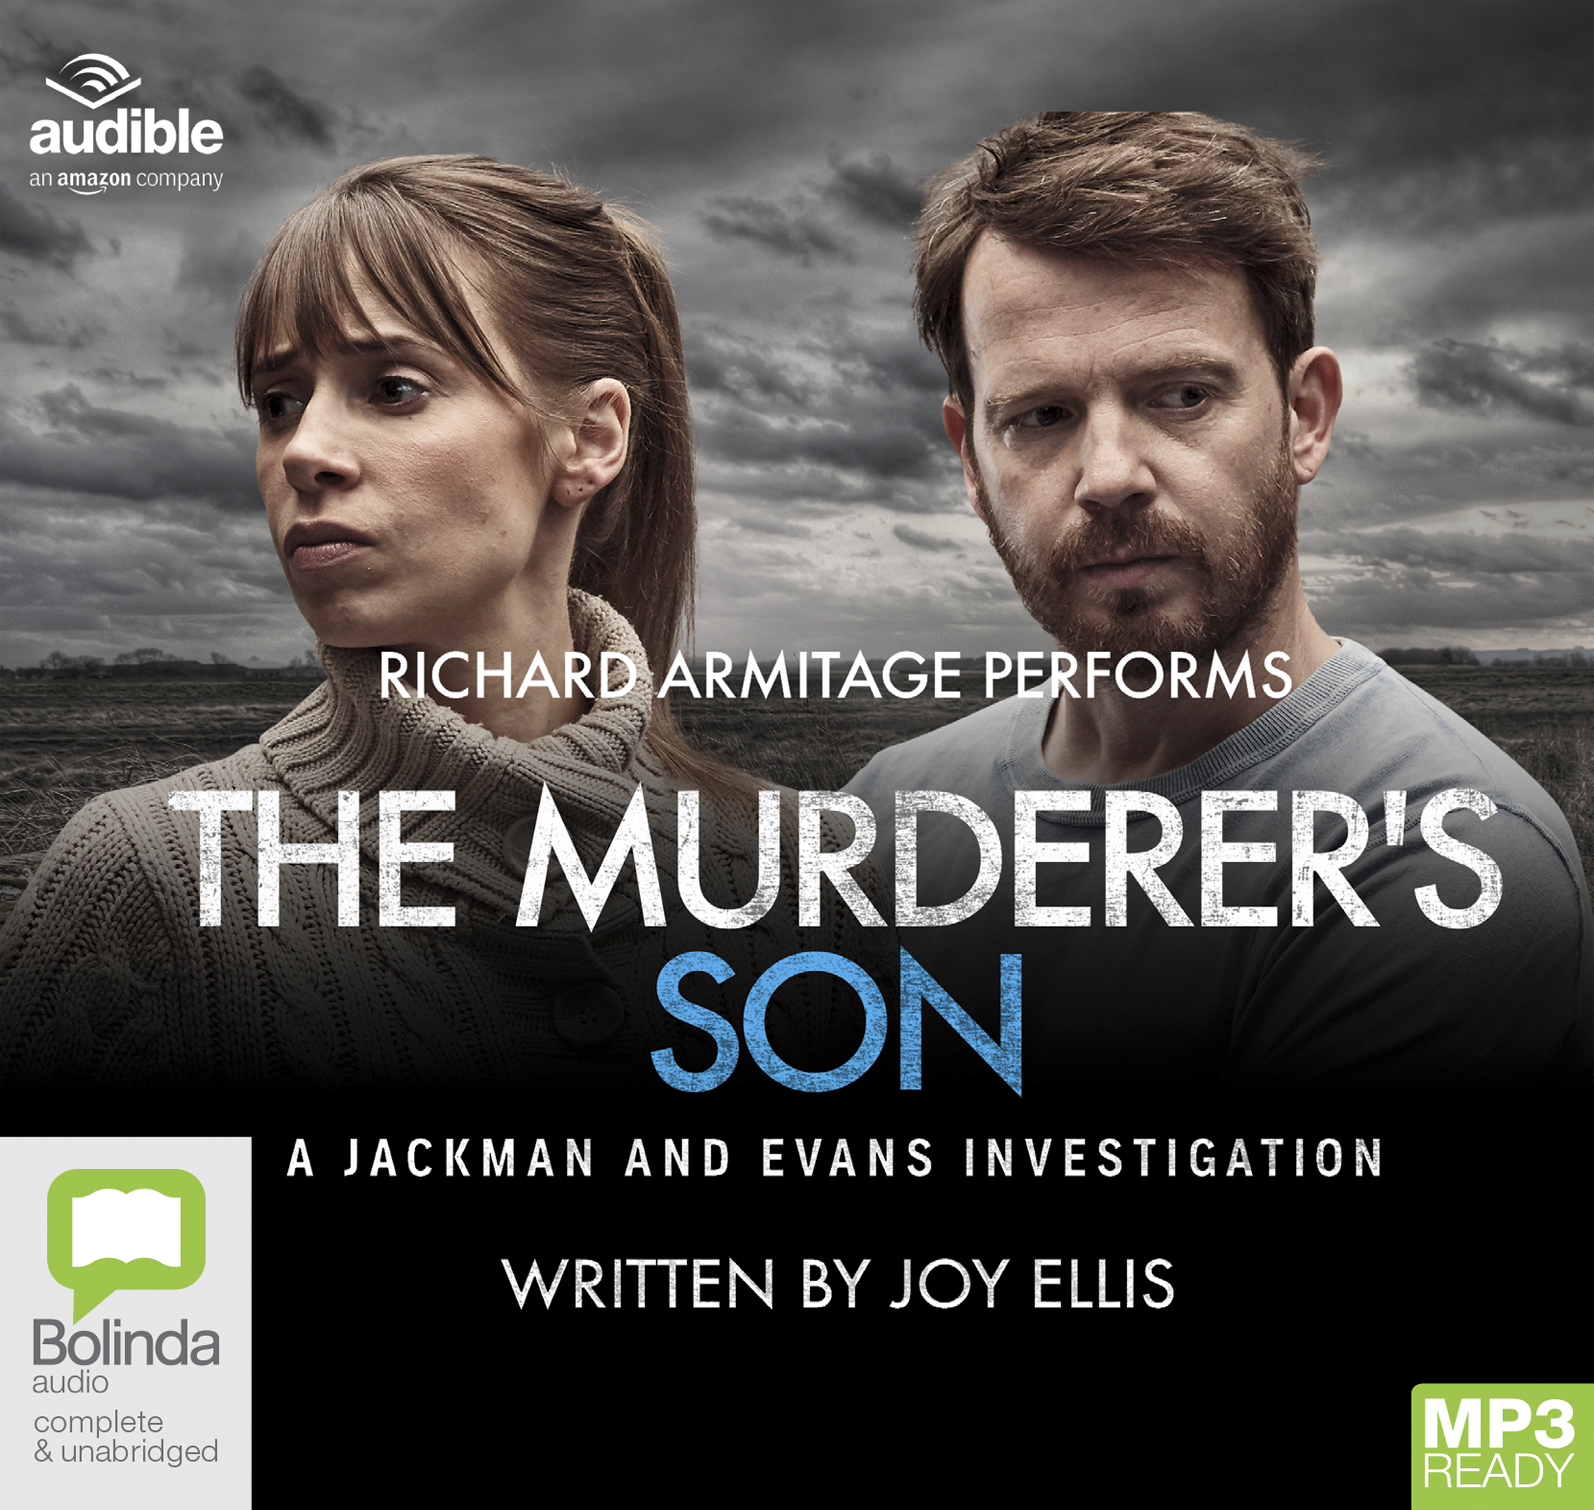 Image for The murderer's son